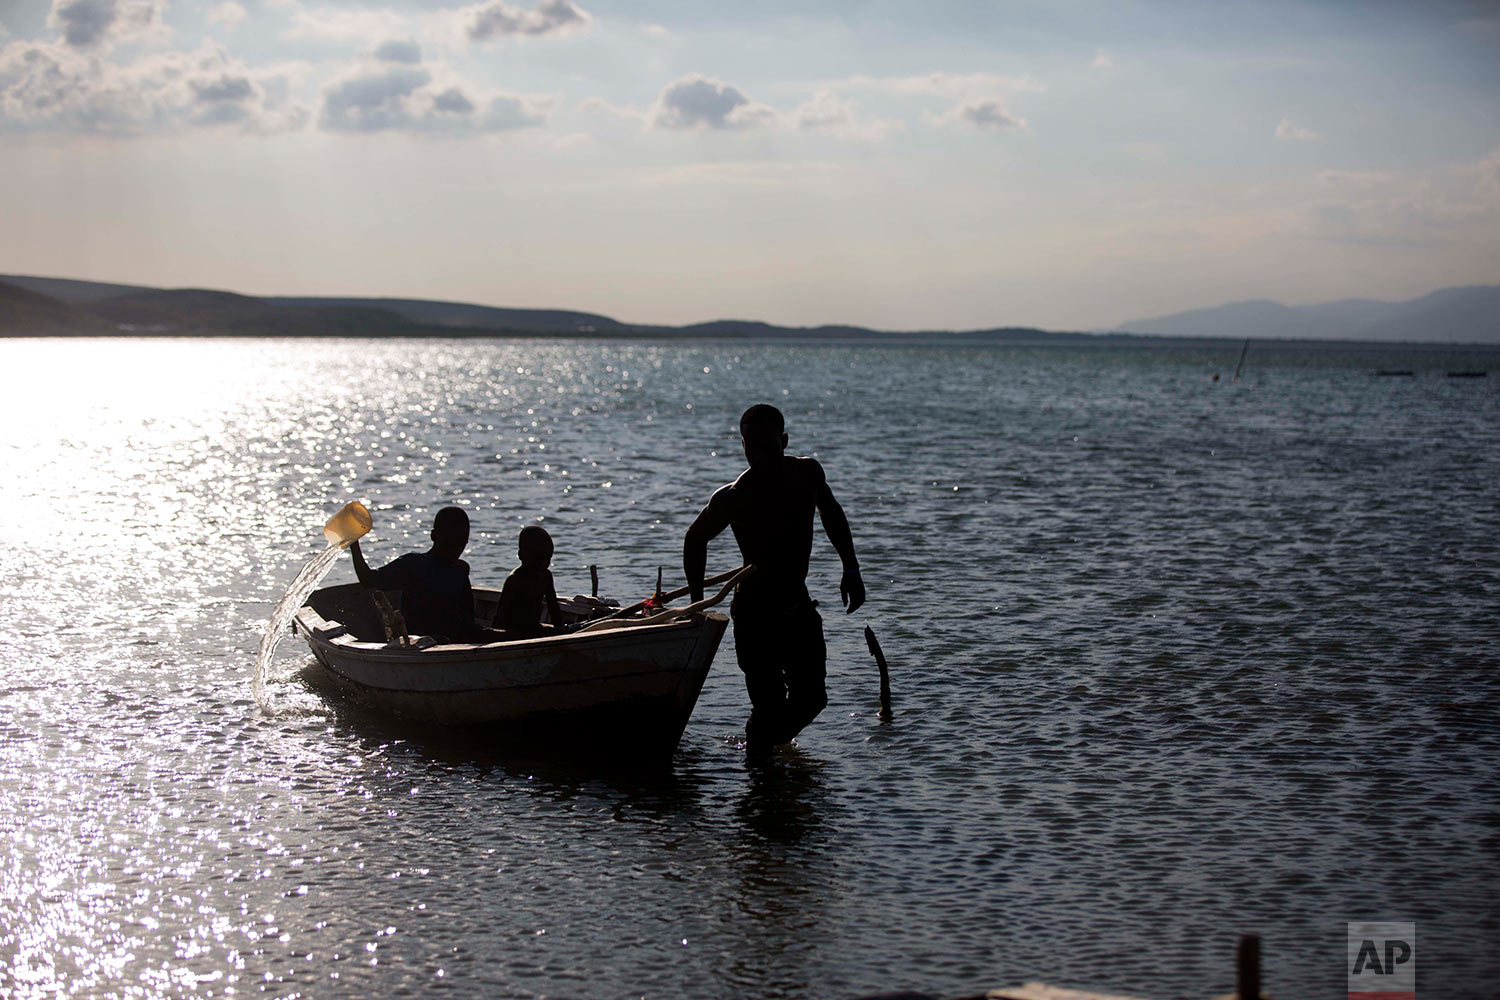 In this April 26, 2018 photo, fisherman Miguel Louis pulls his children in his boat after checking on his nets set up in Lake Azuei in Fond Parisien, Haiti. His 12-year-old son Dabens Louis bales water from the old, wooden boat, due to a small hole. (AP Photo/Dieu Nalio Chery)